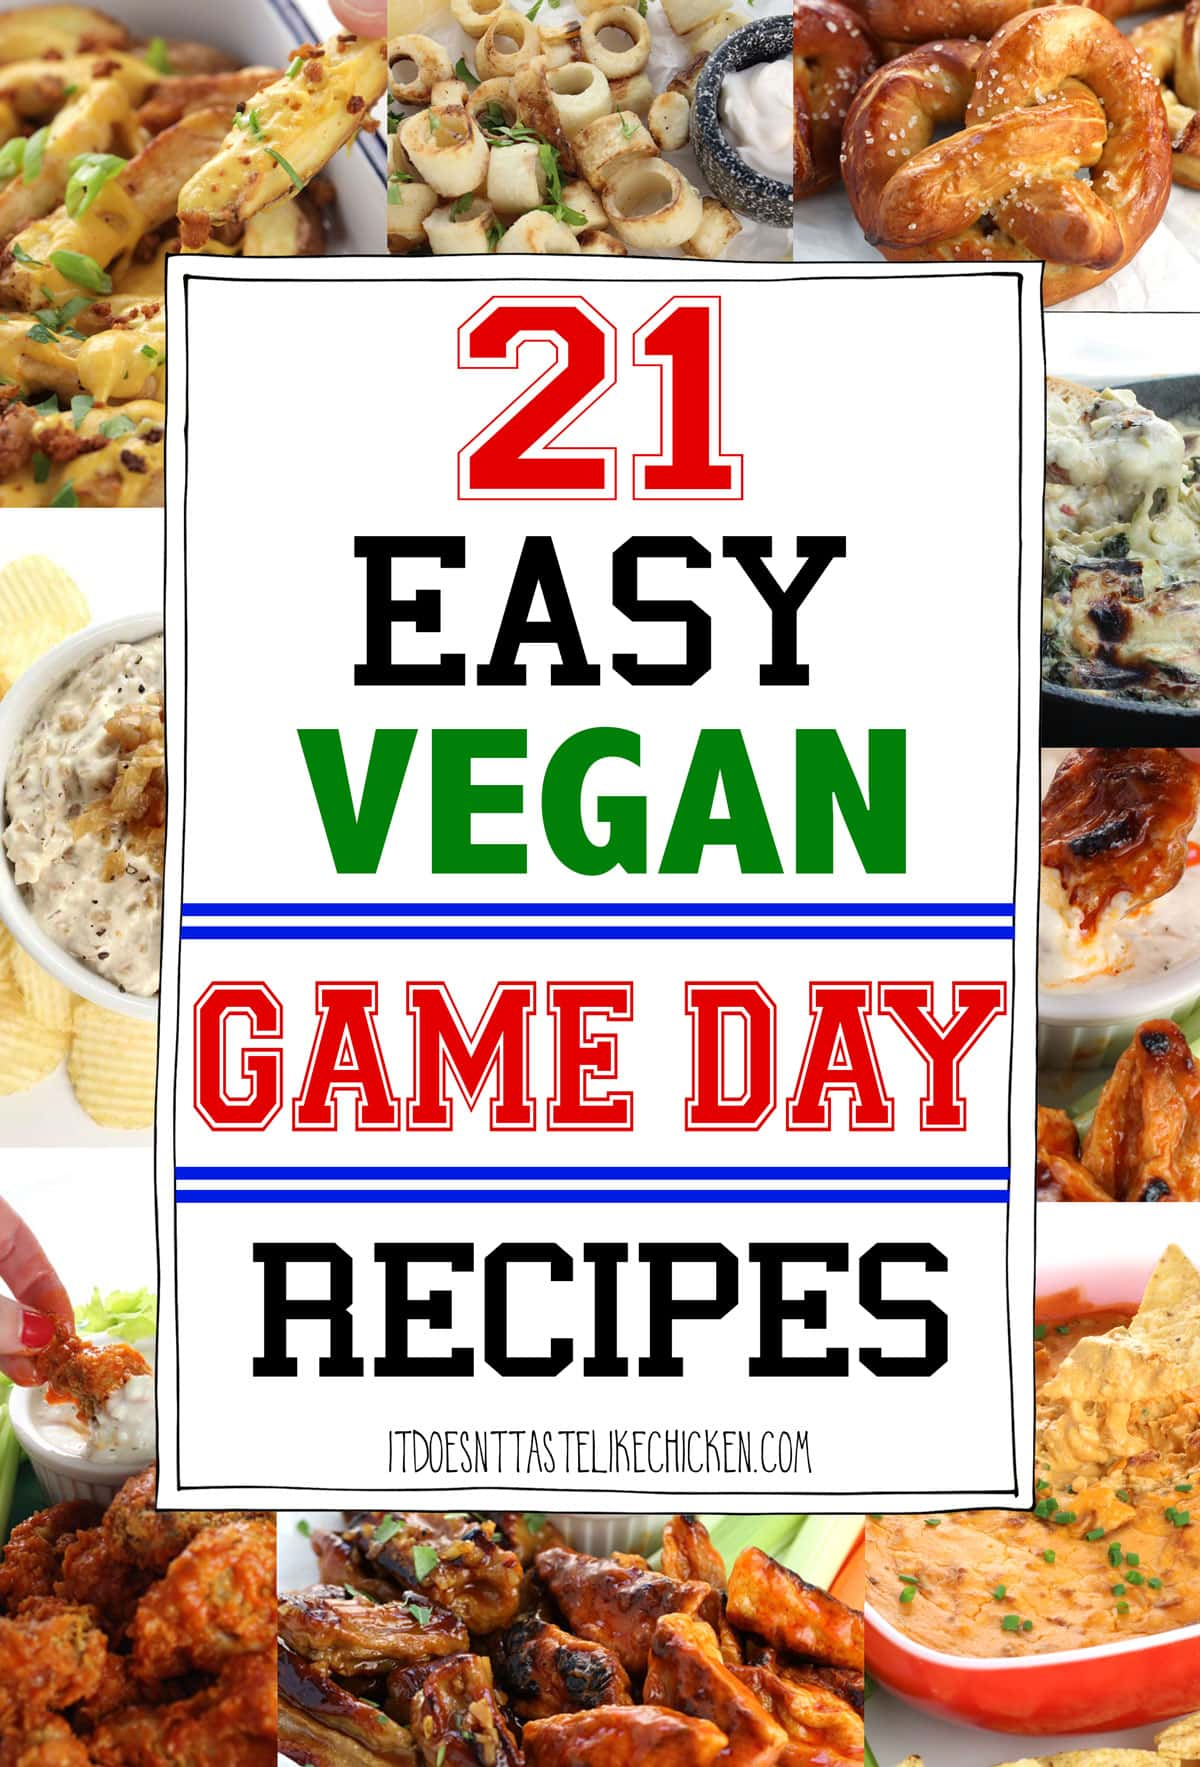 21 Easy Vegan Game Day Recipes! Everything from wings, to pretzels, Buffalo chicken dip, spinach and artichoke dip, loaded fries, nachos, and more. All made totally vegan! Perfect for the super bowl, any game day, or to satisfy your bar food cravings. #itdoesnttastelikechicken #veganrecipes #gameday